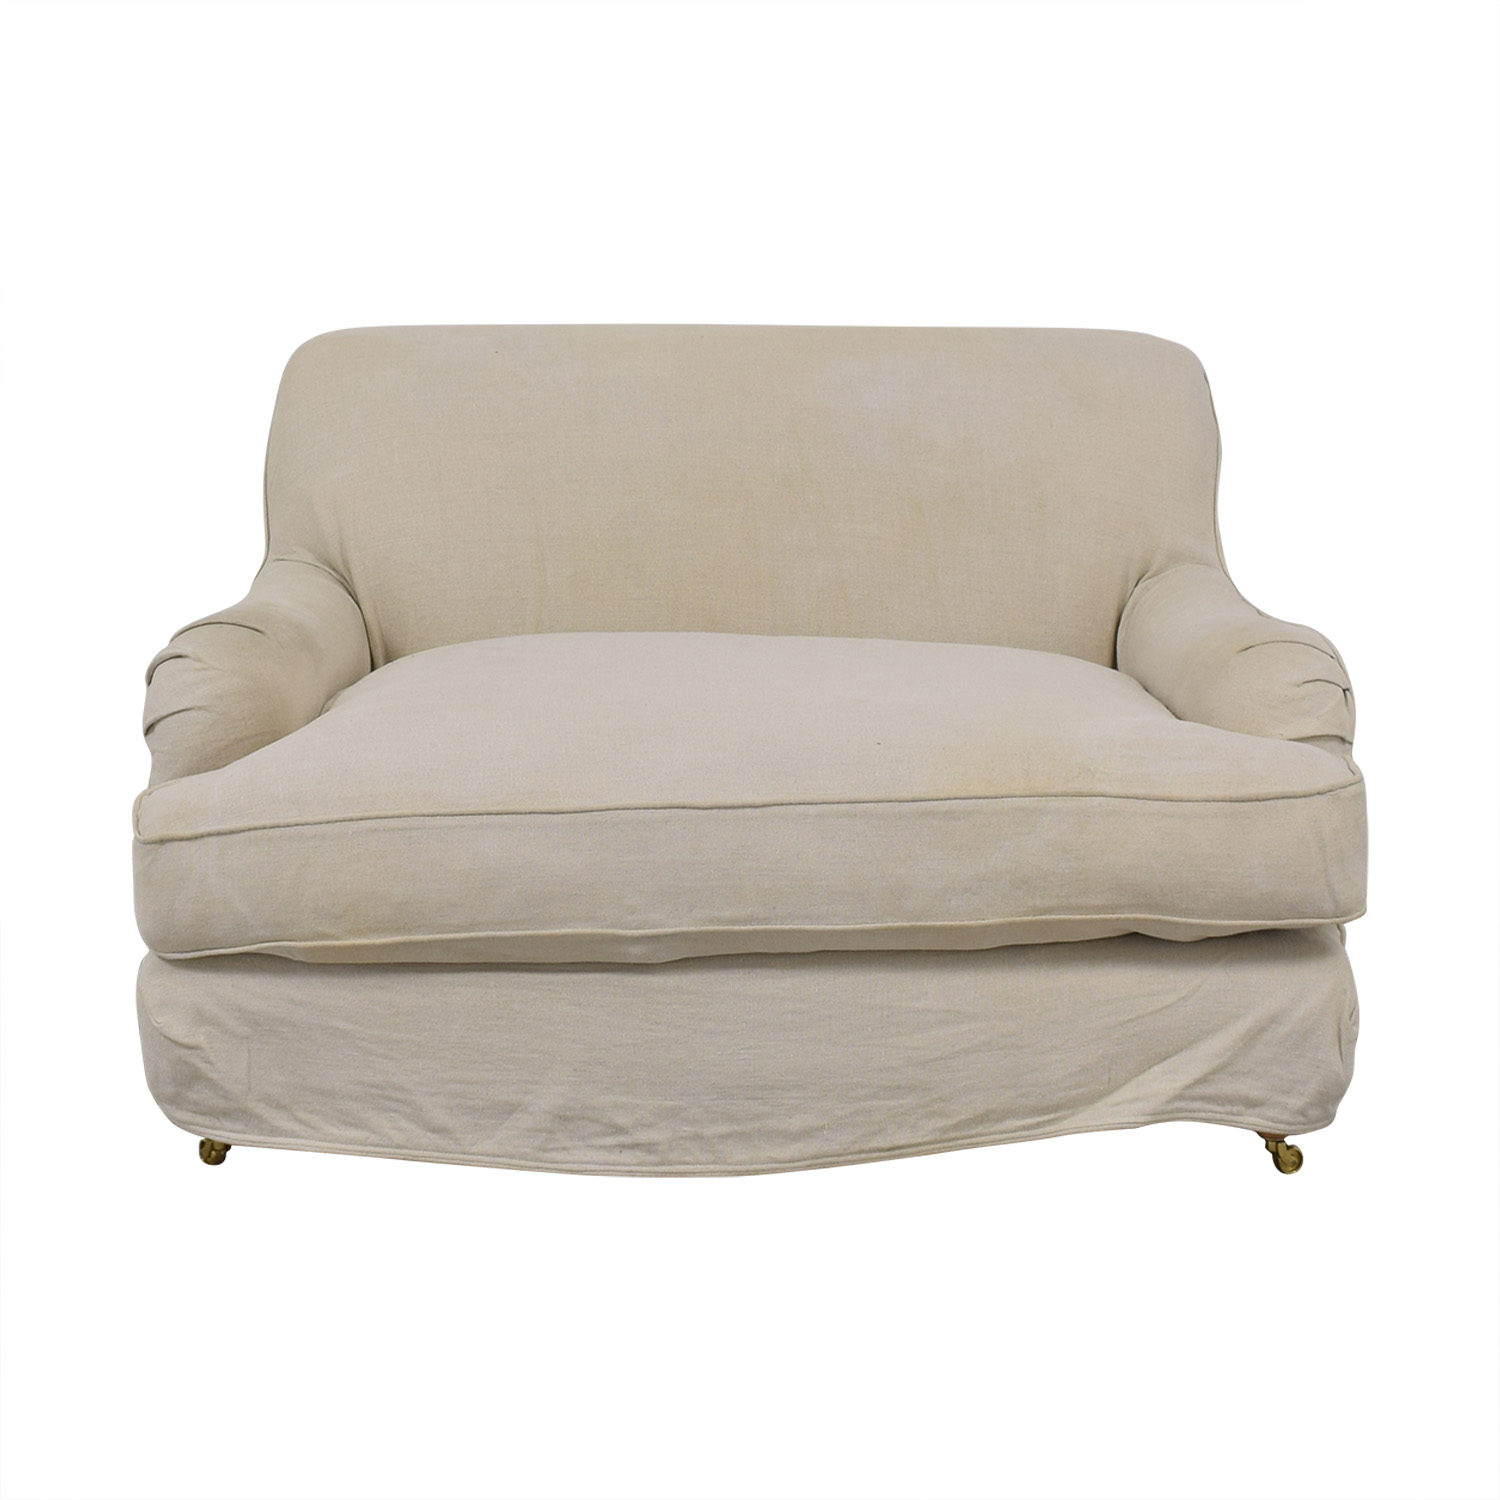 Rachel Ashwell Shabby Chic Rachel Ashwell Shabby Chic Chair and Half for sale